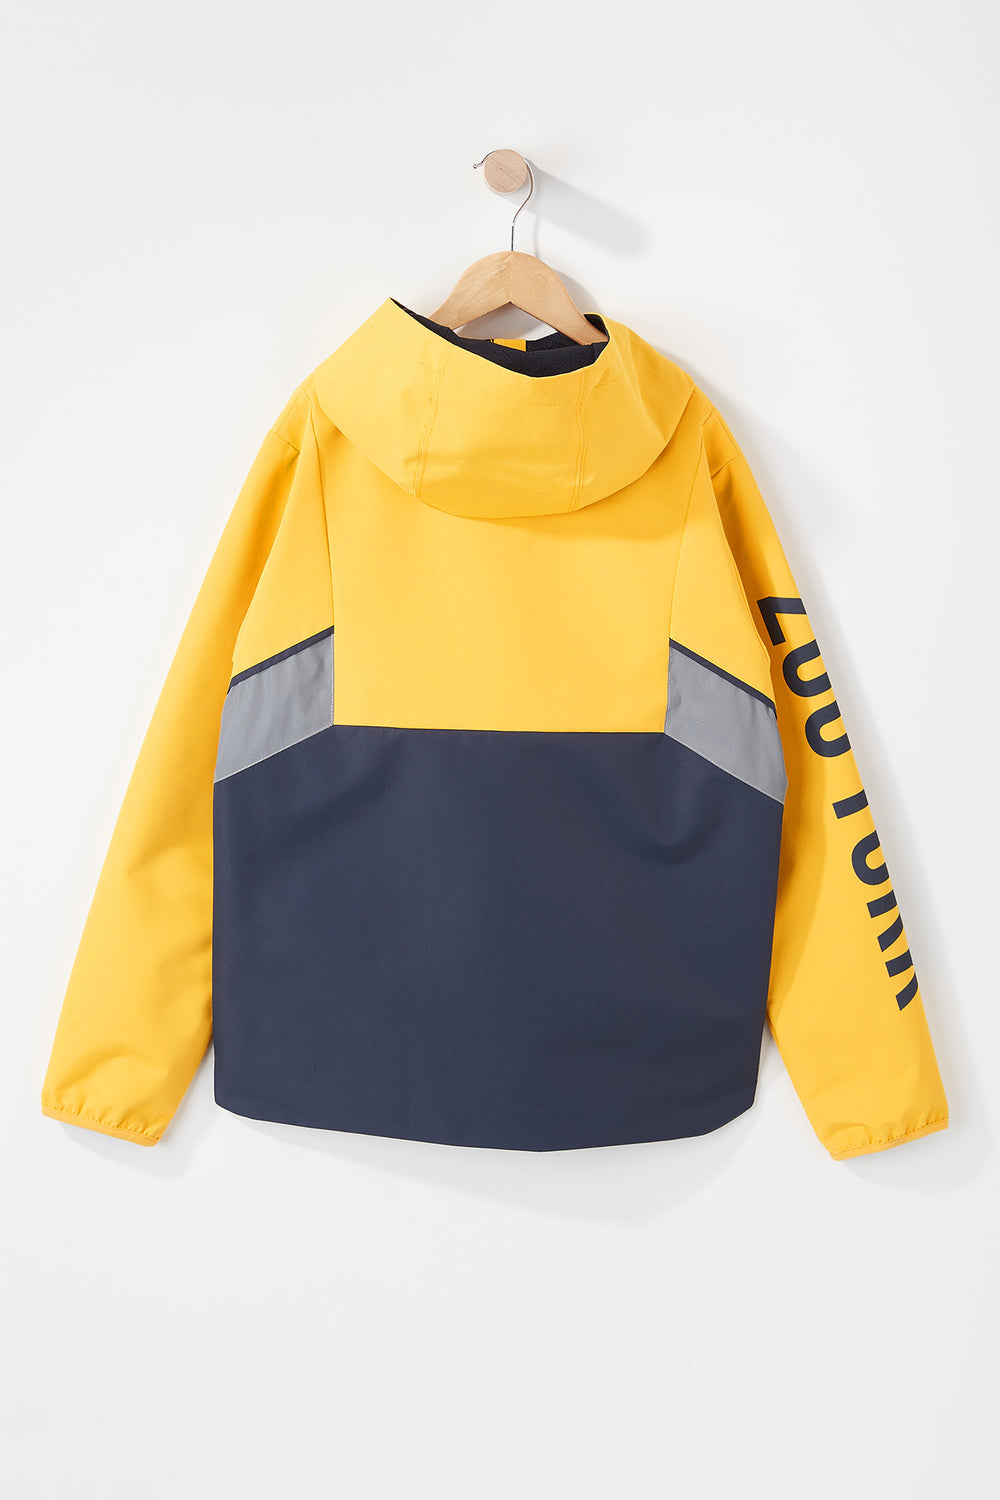 Zoo York Boys Colour Block Jacket Yellow